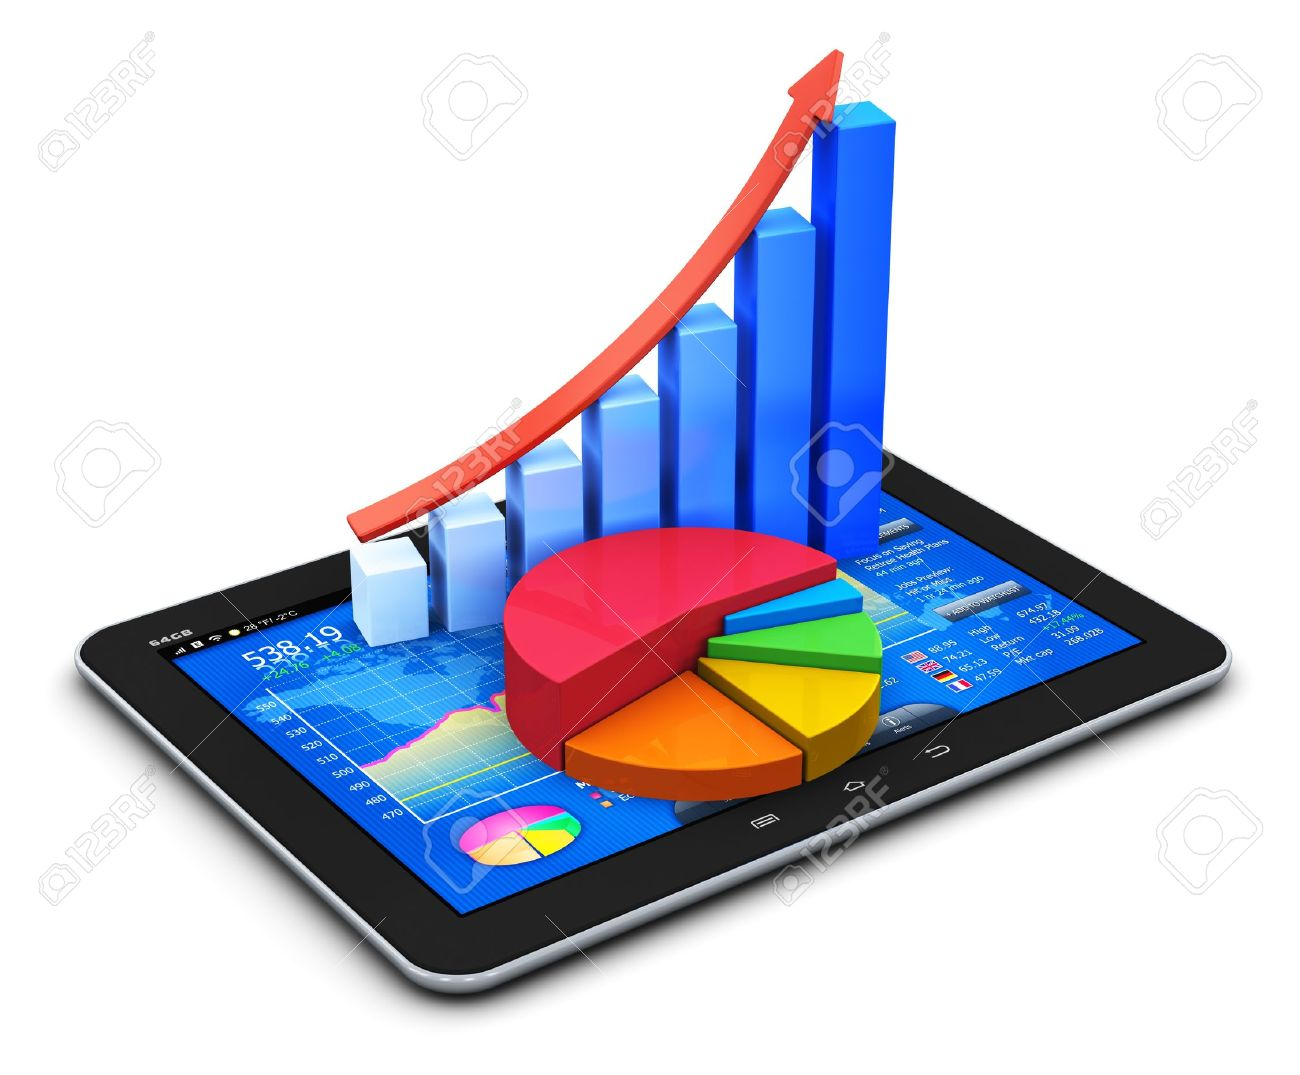 Mobile office stock exchange market trading statistics accounting and banking business concept modern touchscreen tablet computer pc with stock market application software interface growth bar chart and pie diagram ccuart Image collections